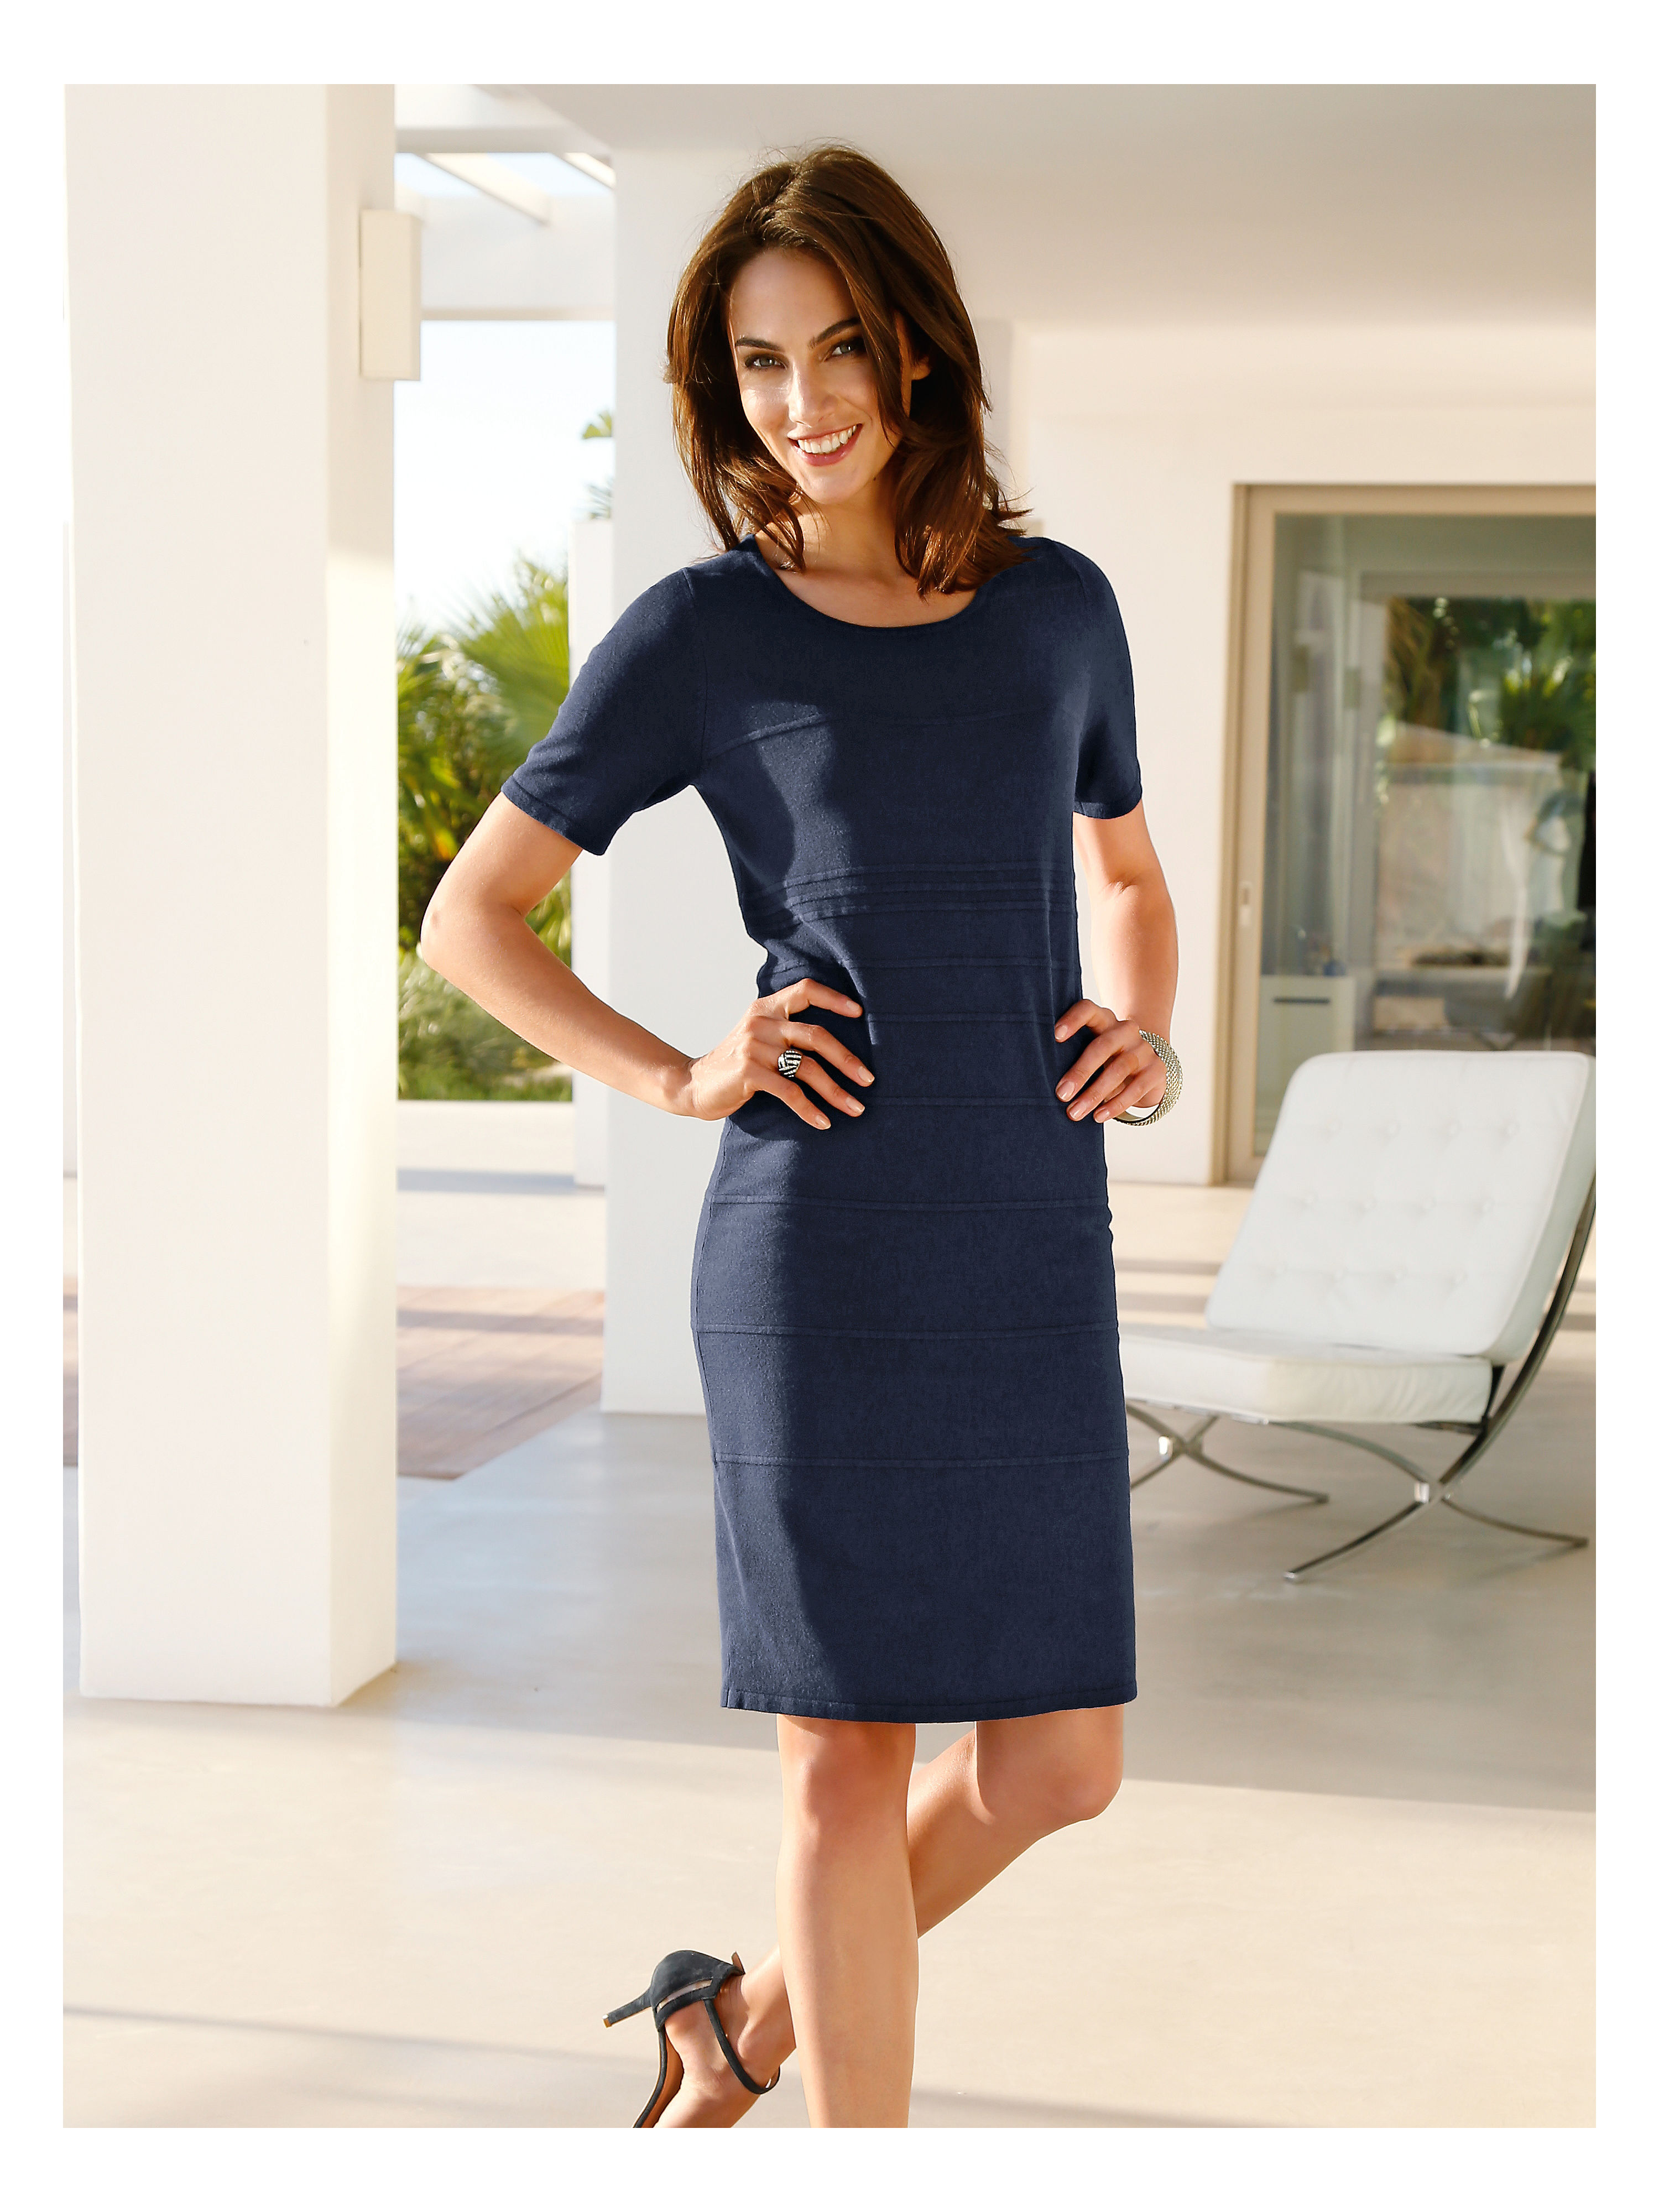 Knitted dress from Peter Hahn blue